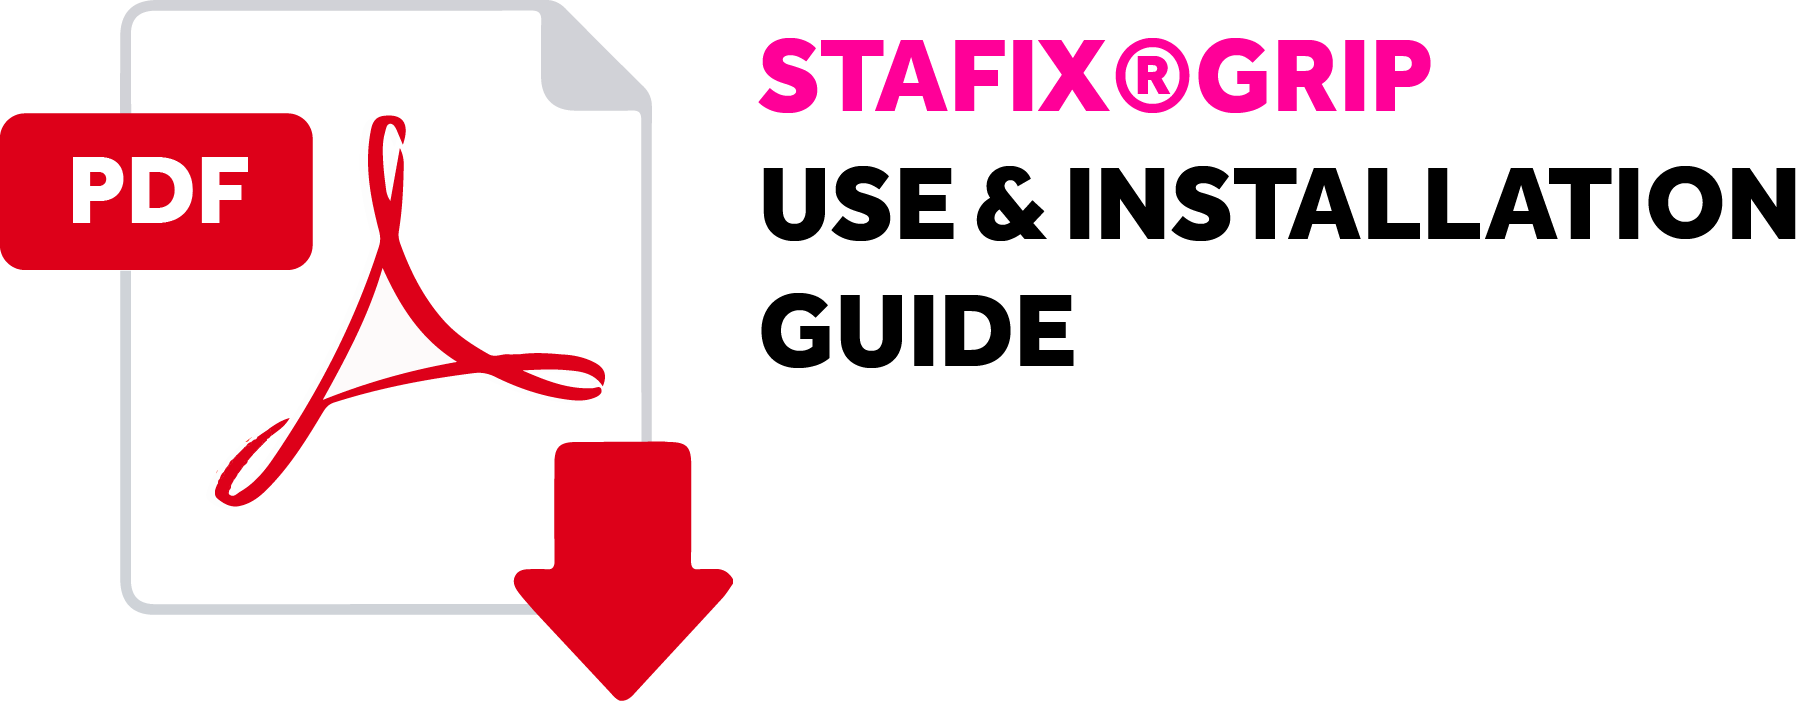 stafixgrip_download_use_installation_guideline_8_2016_eng